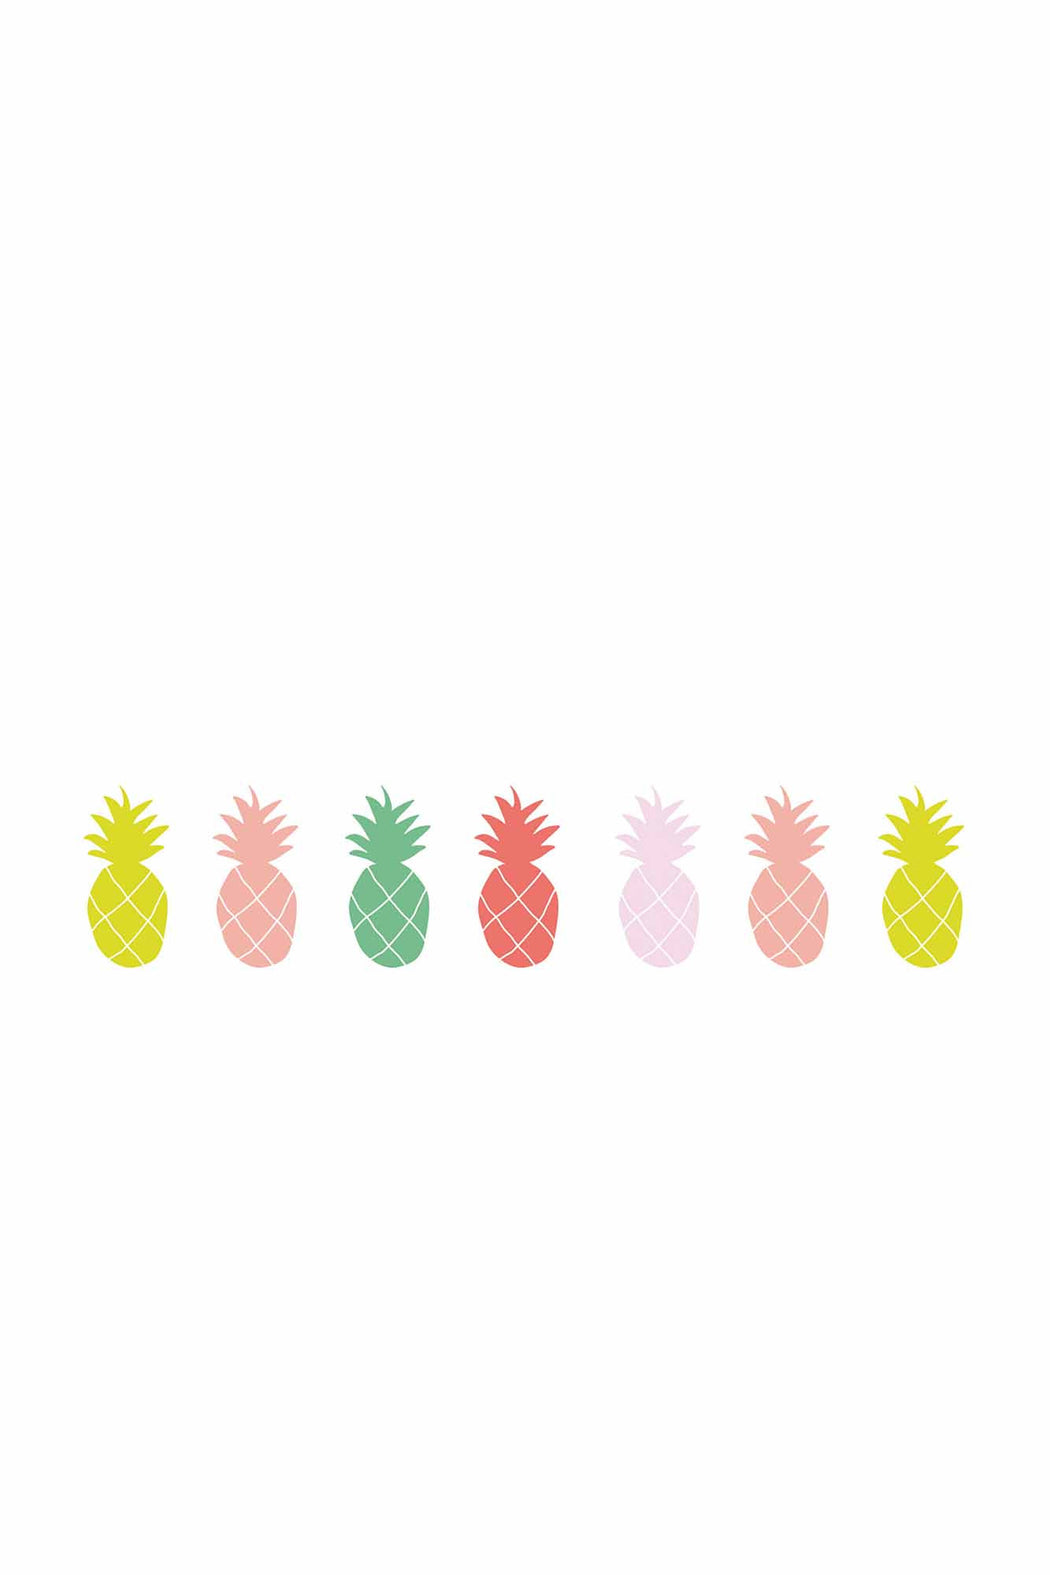 Colourful Pineapple Vinyl Decals, Decor, MIMI' lou - 3LittlePicks